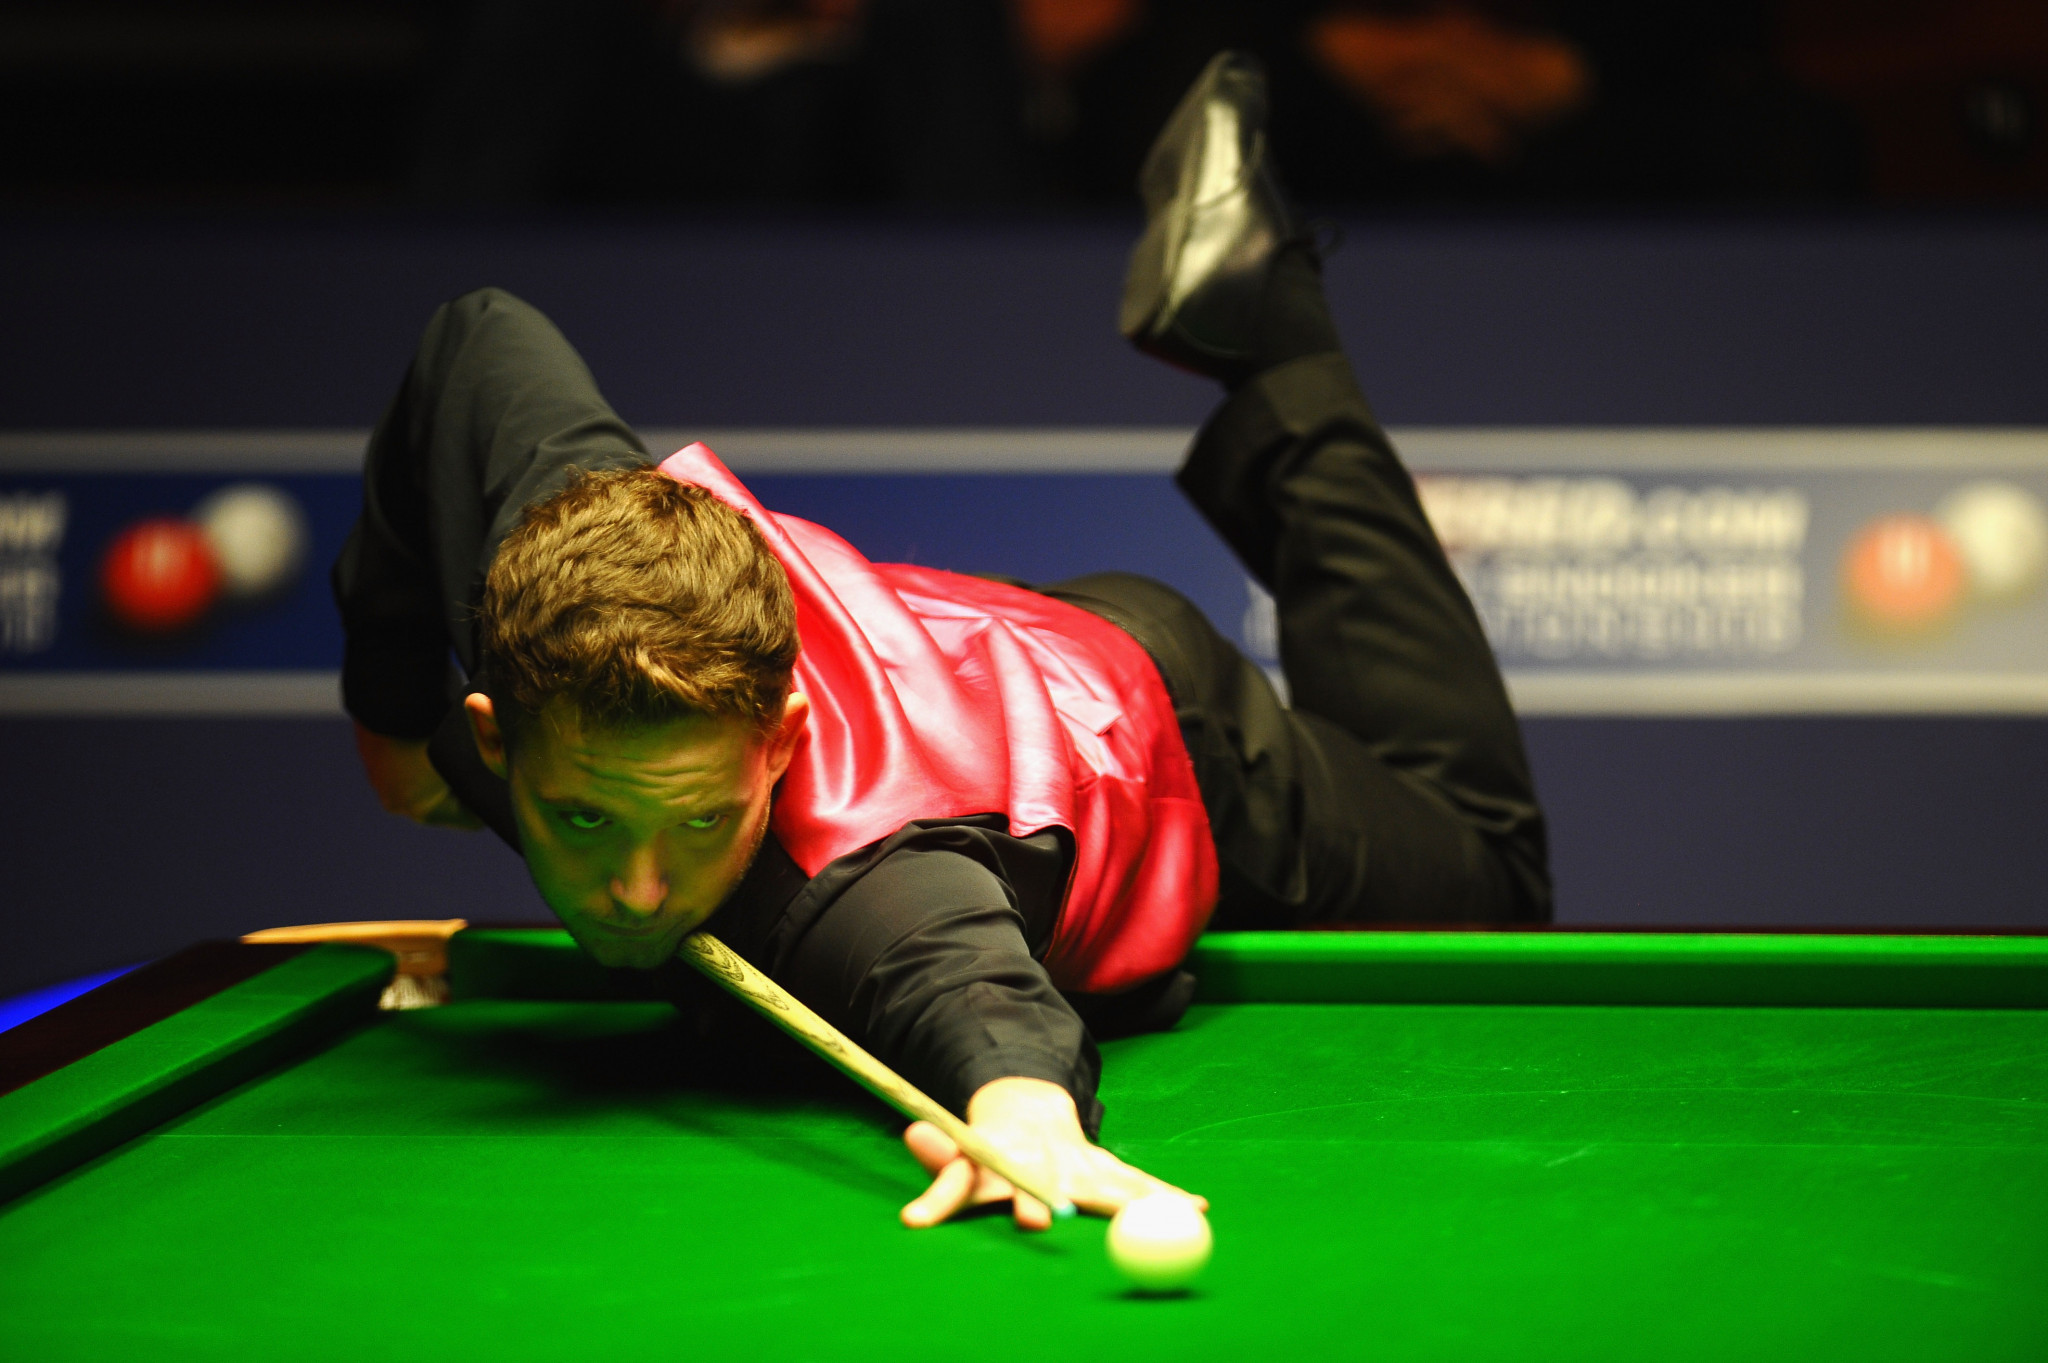 Player ranked outside top 50 shocks former champion in tense first round match at World Snooker Championship